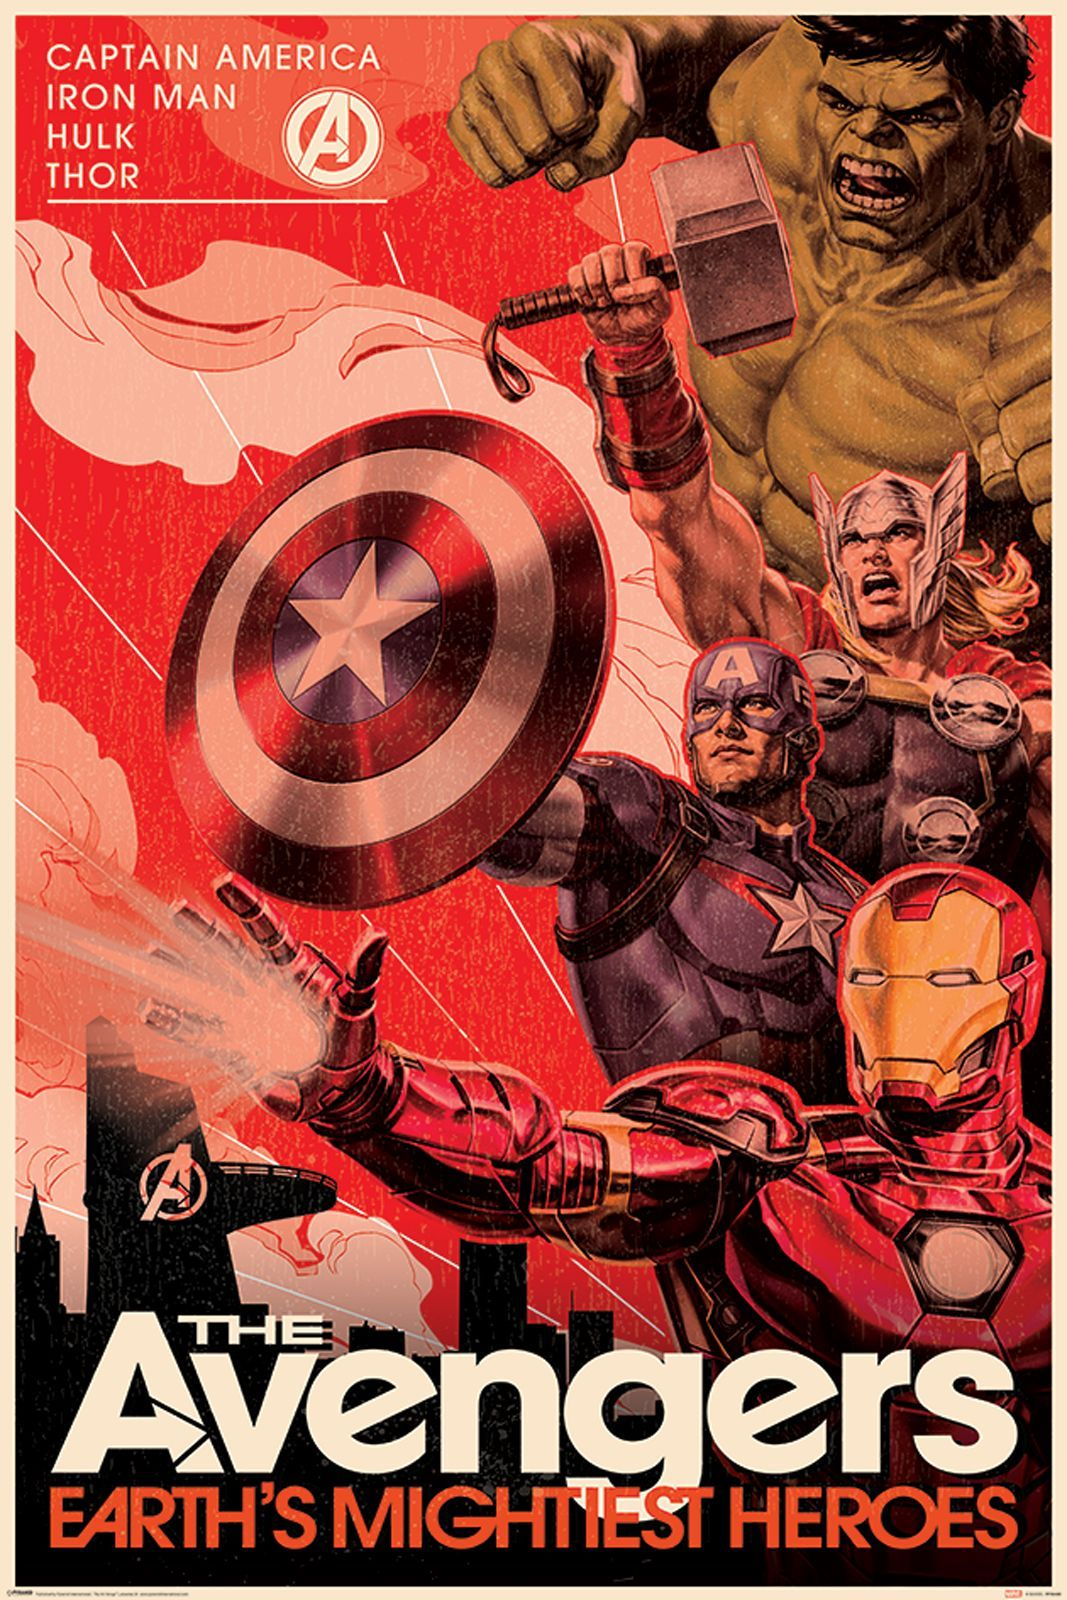 Image for Avengers Movie Poster Buy